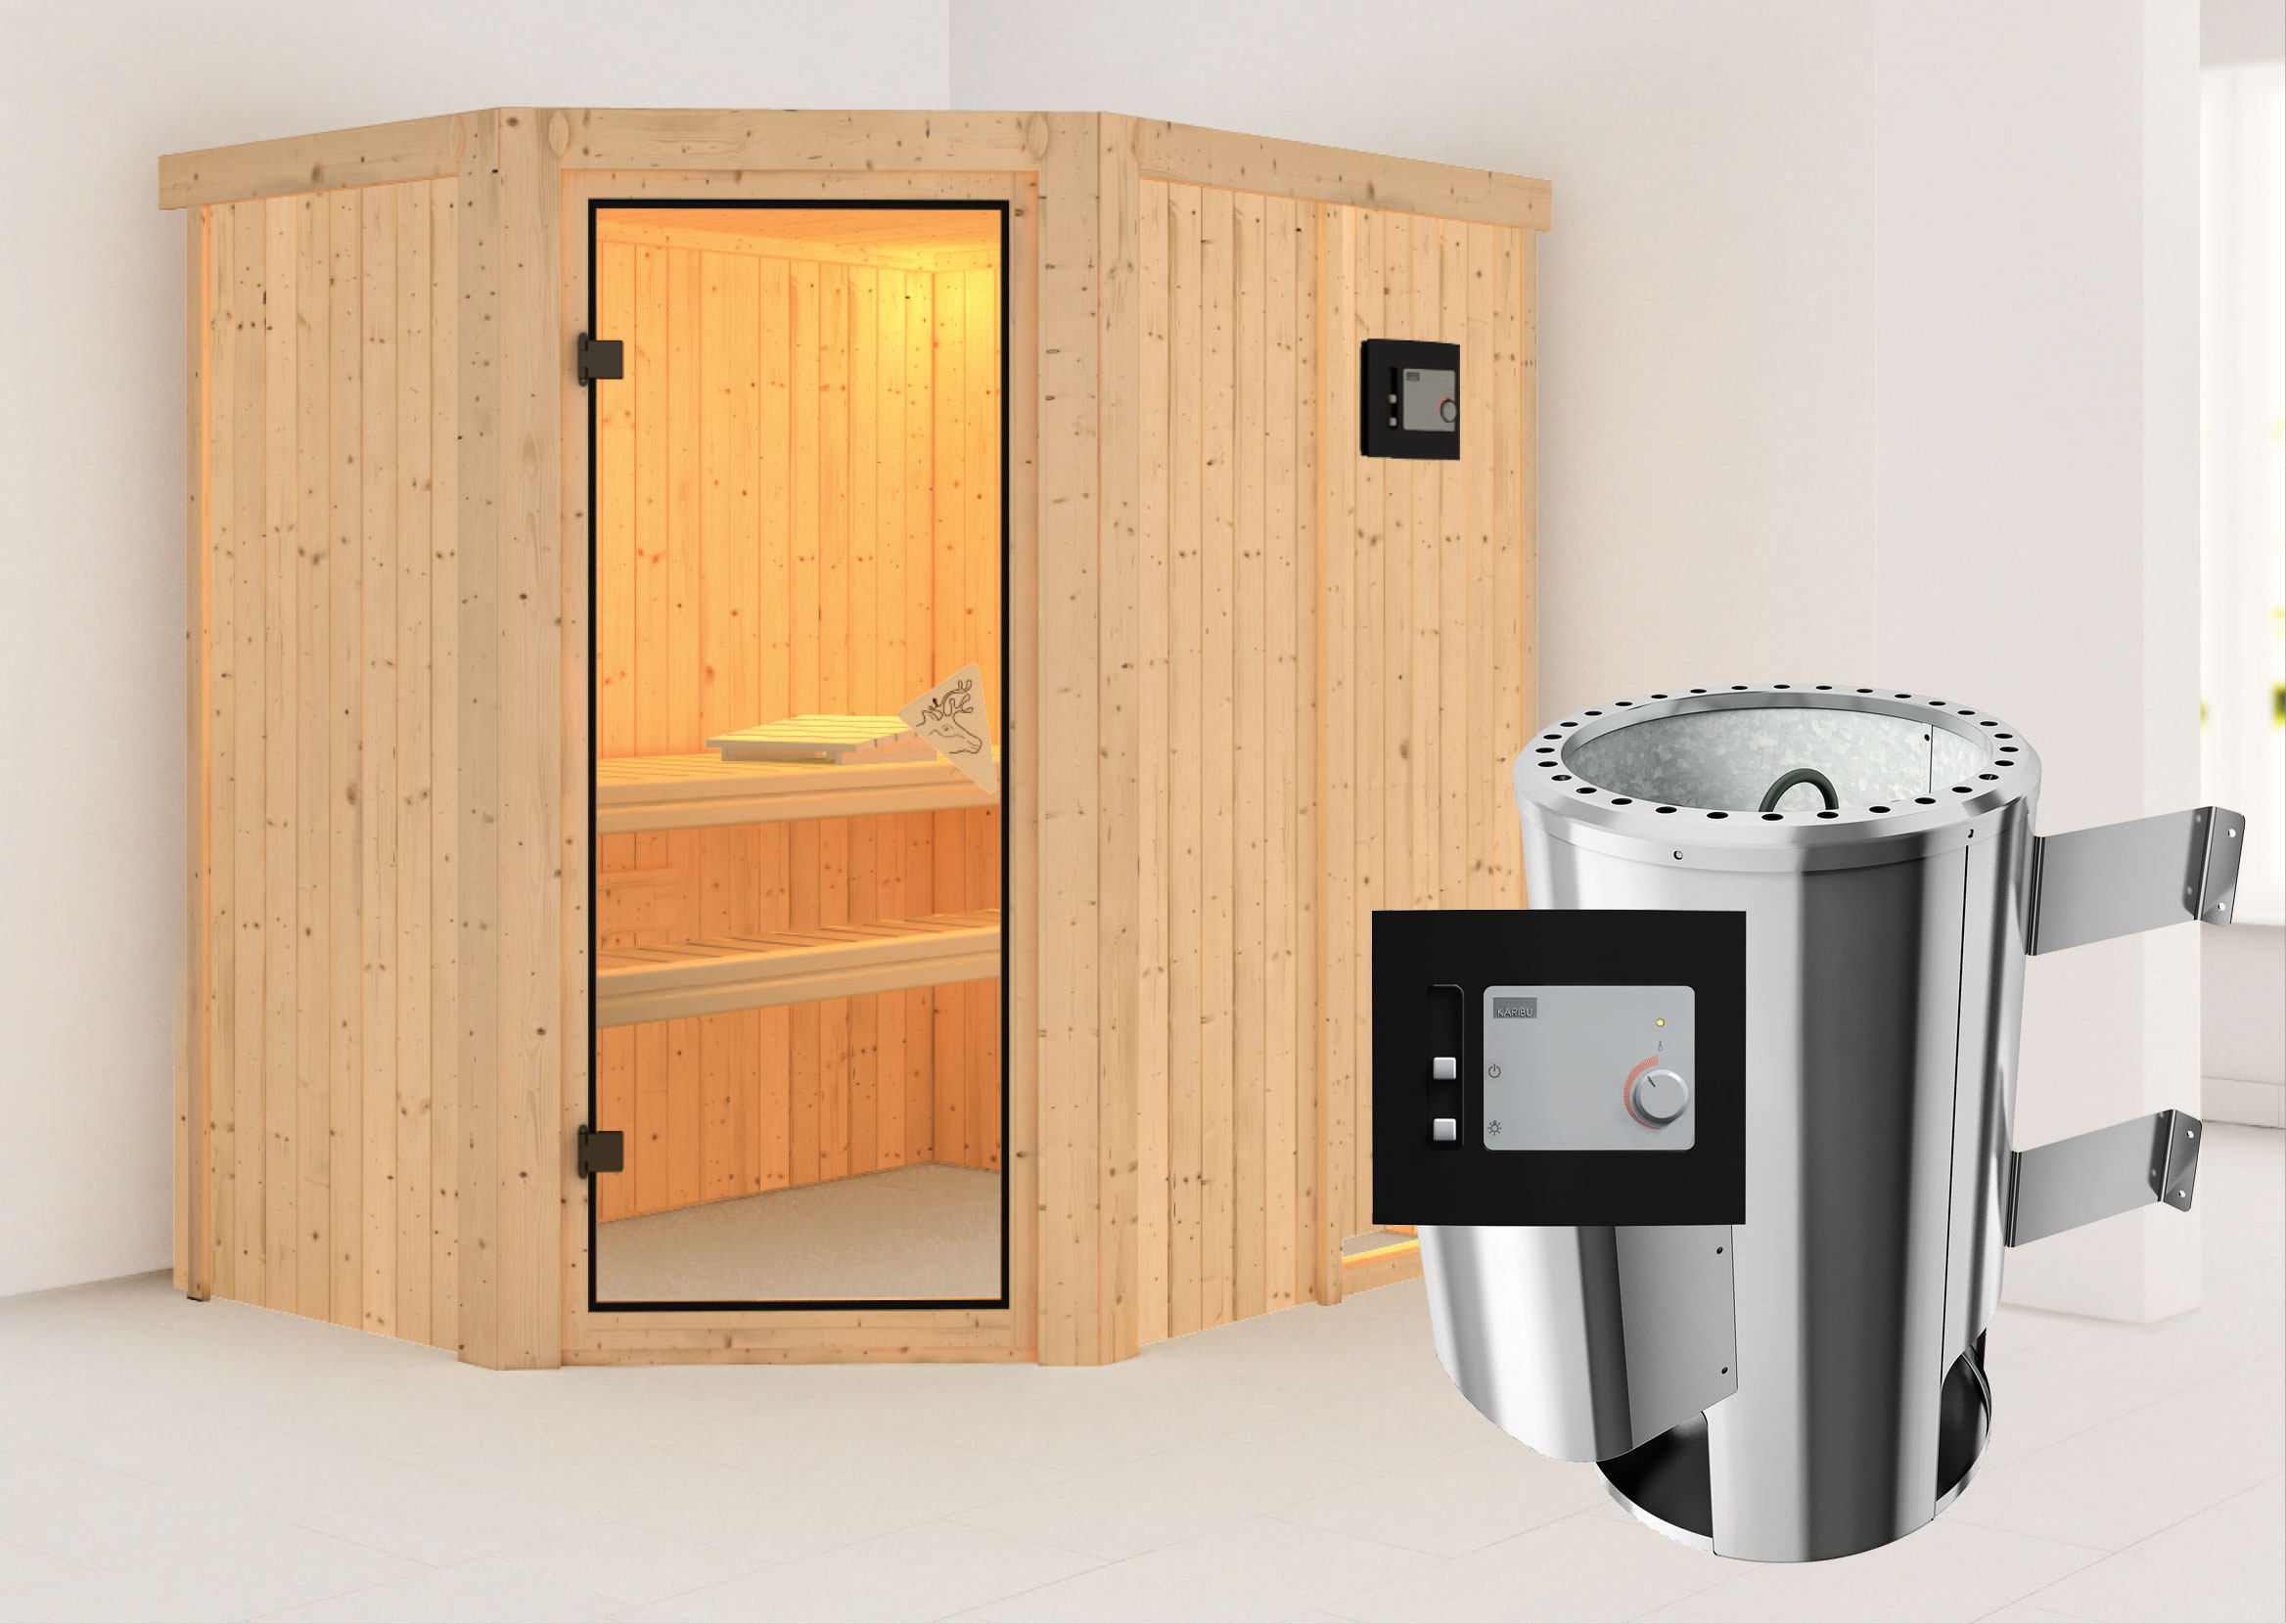 karibu sauna saja 230 volt mit saunaofen 3 6kw extern. Black Bedroom Furniture Sets. Home Design Ideas